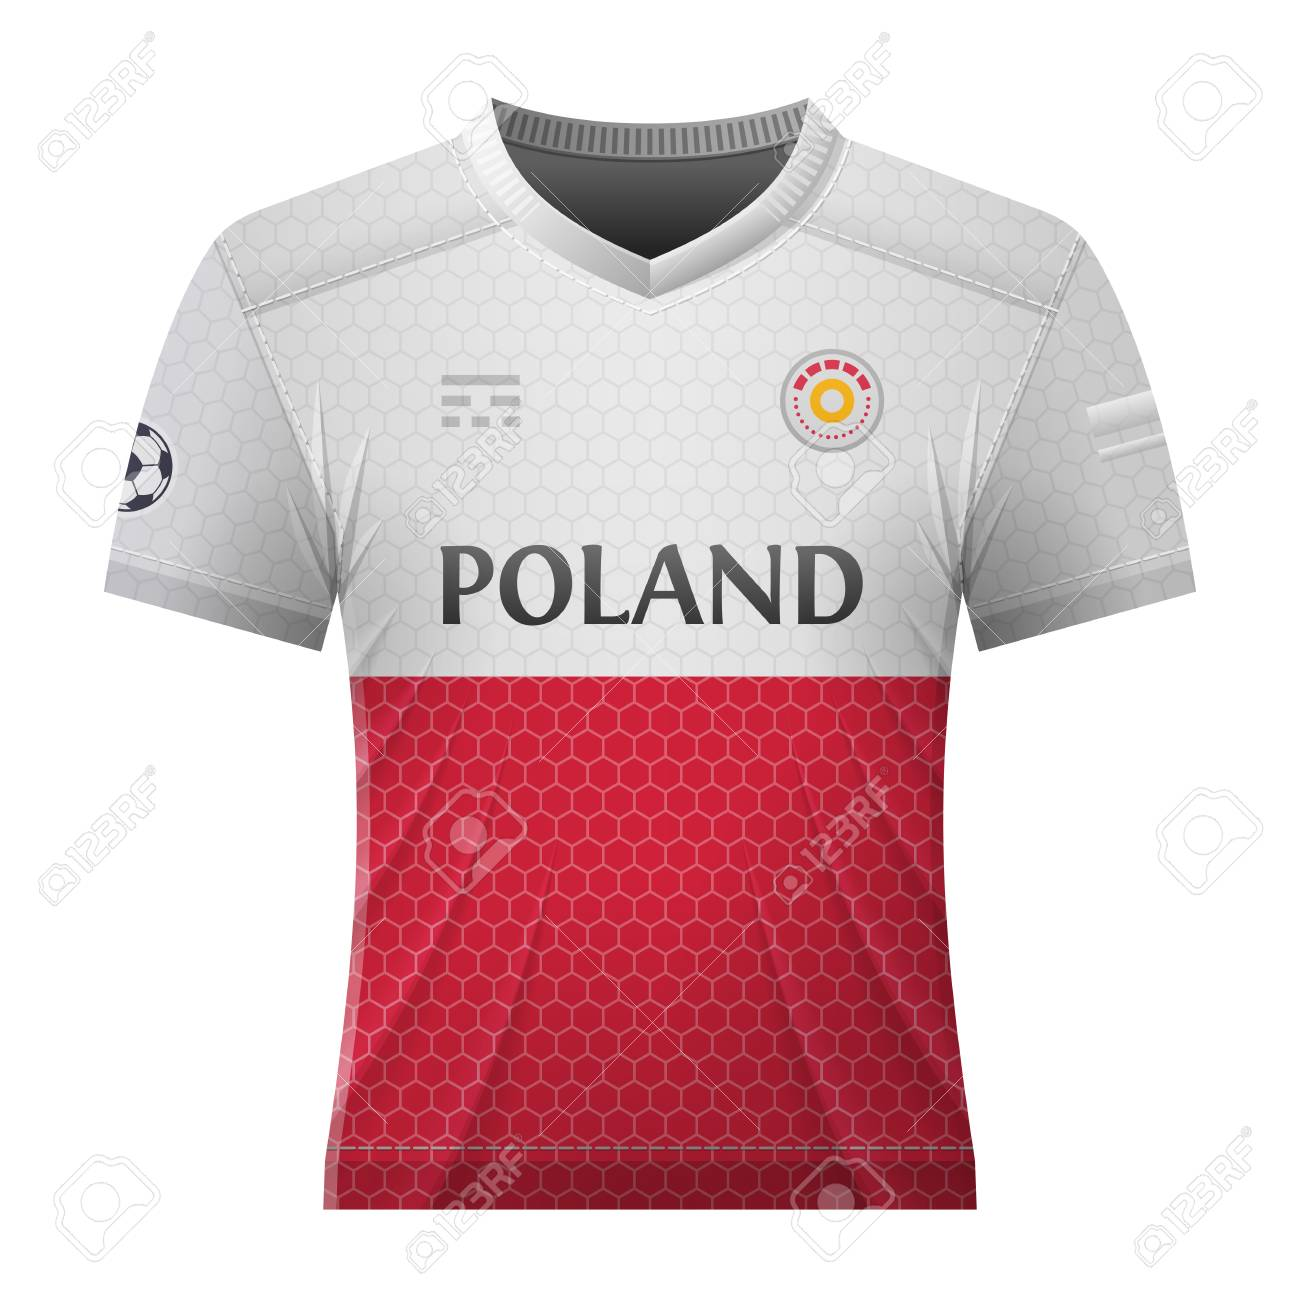 timeless design fbe7f 255cd Soccer shirt in colors of polish flag. National jersey for football..